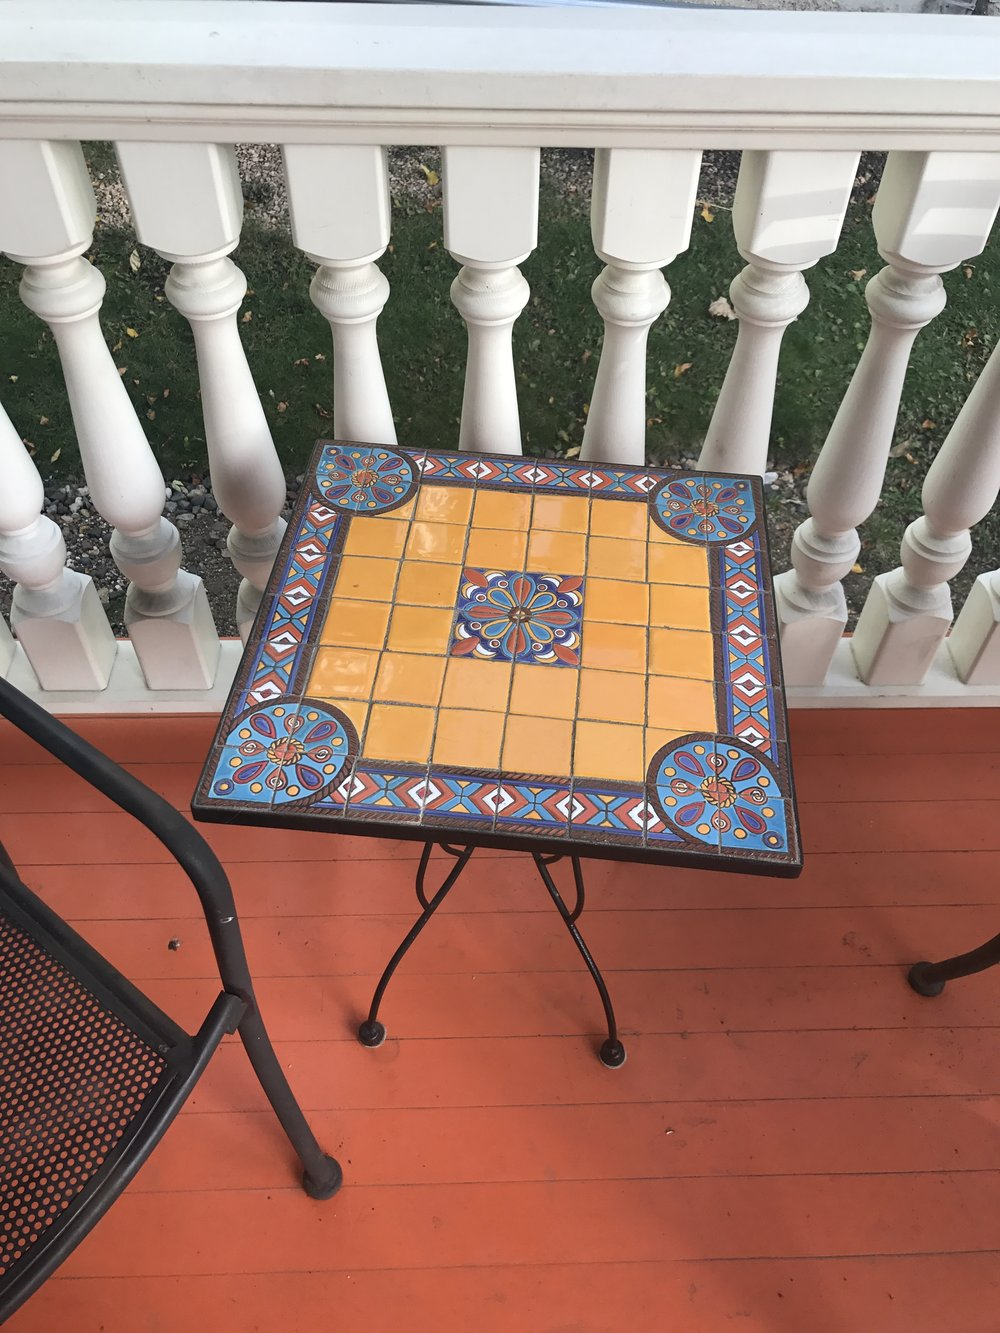 Theresa chose bright colors for her porch, inspired by a trip to Spain with her family.